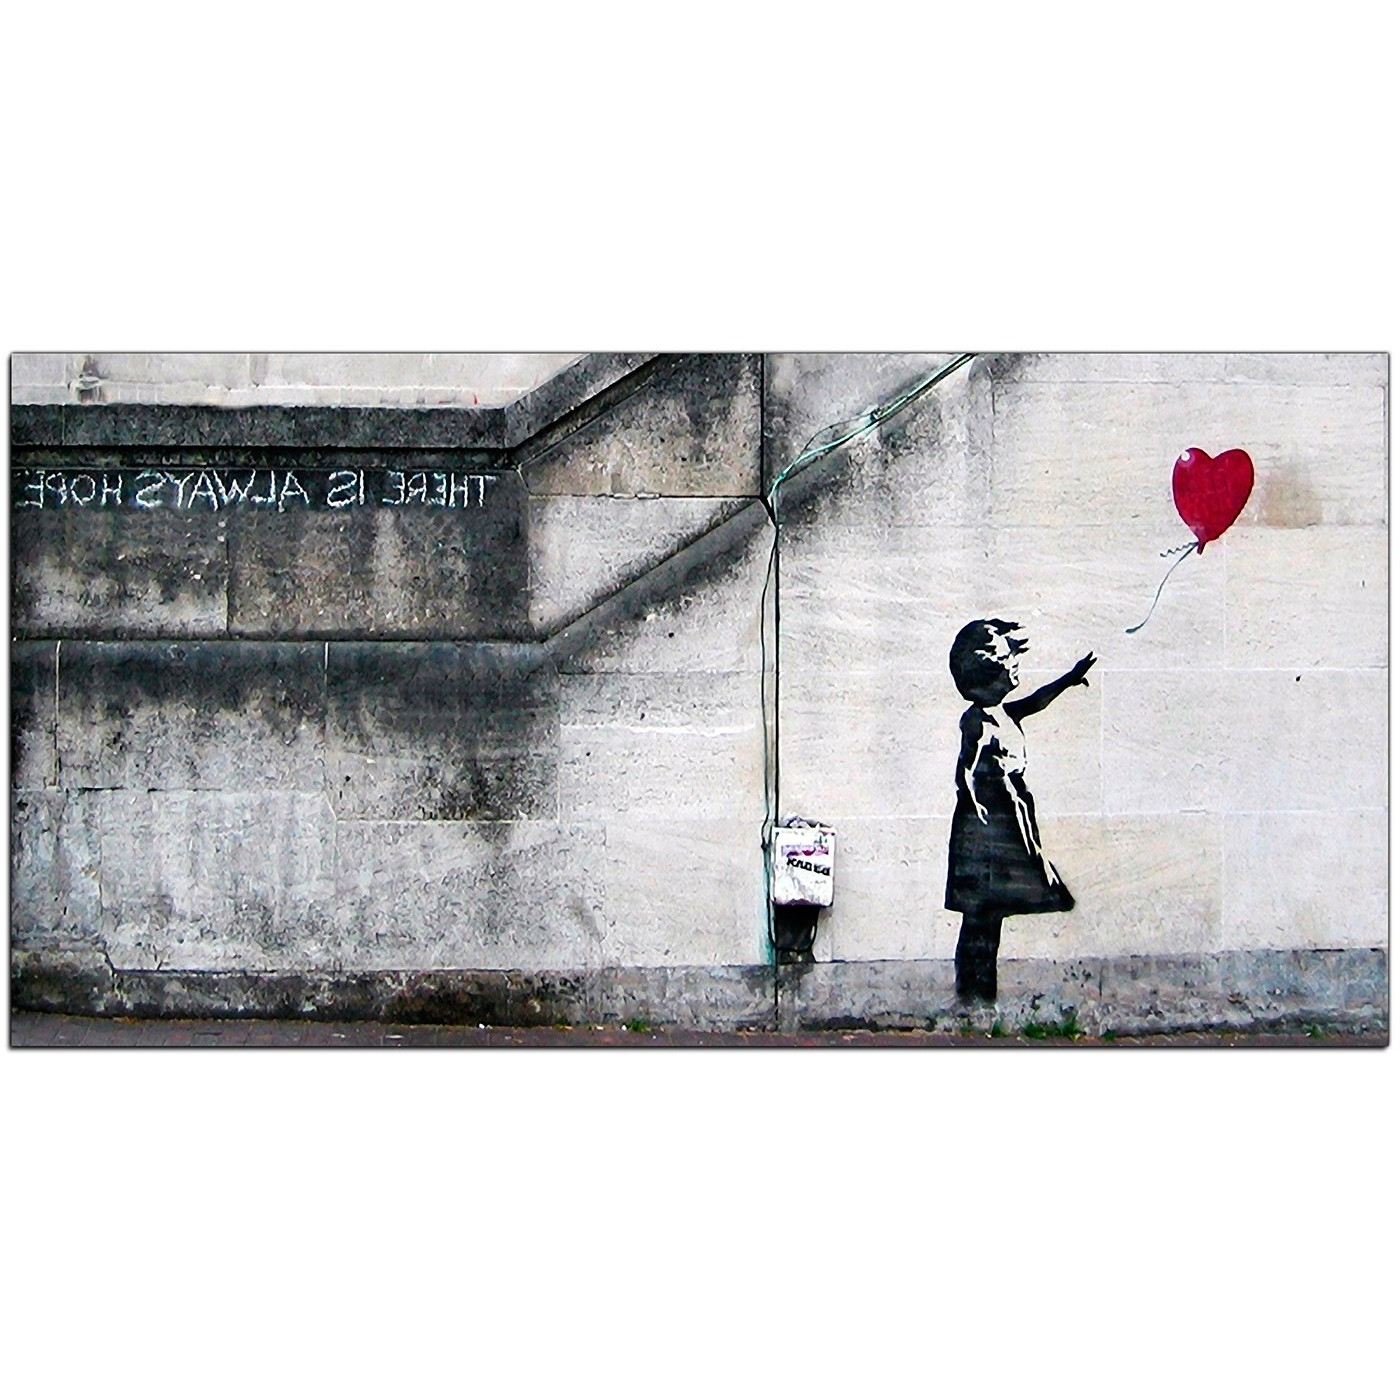 Banksy Canvas Wall Art For Fashionable Banksy Large Canvas Prints – Girl With The Red Balloon For Dining Room (View 6 of 15)